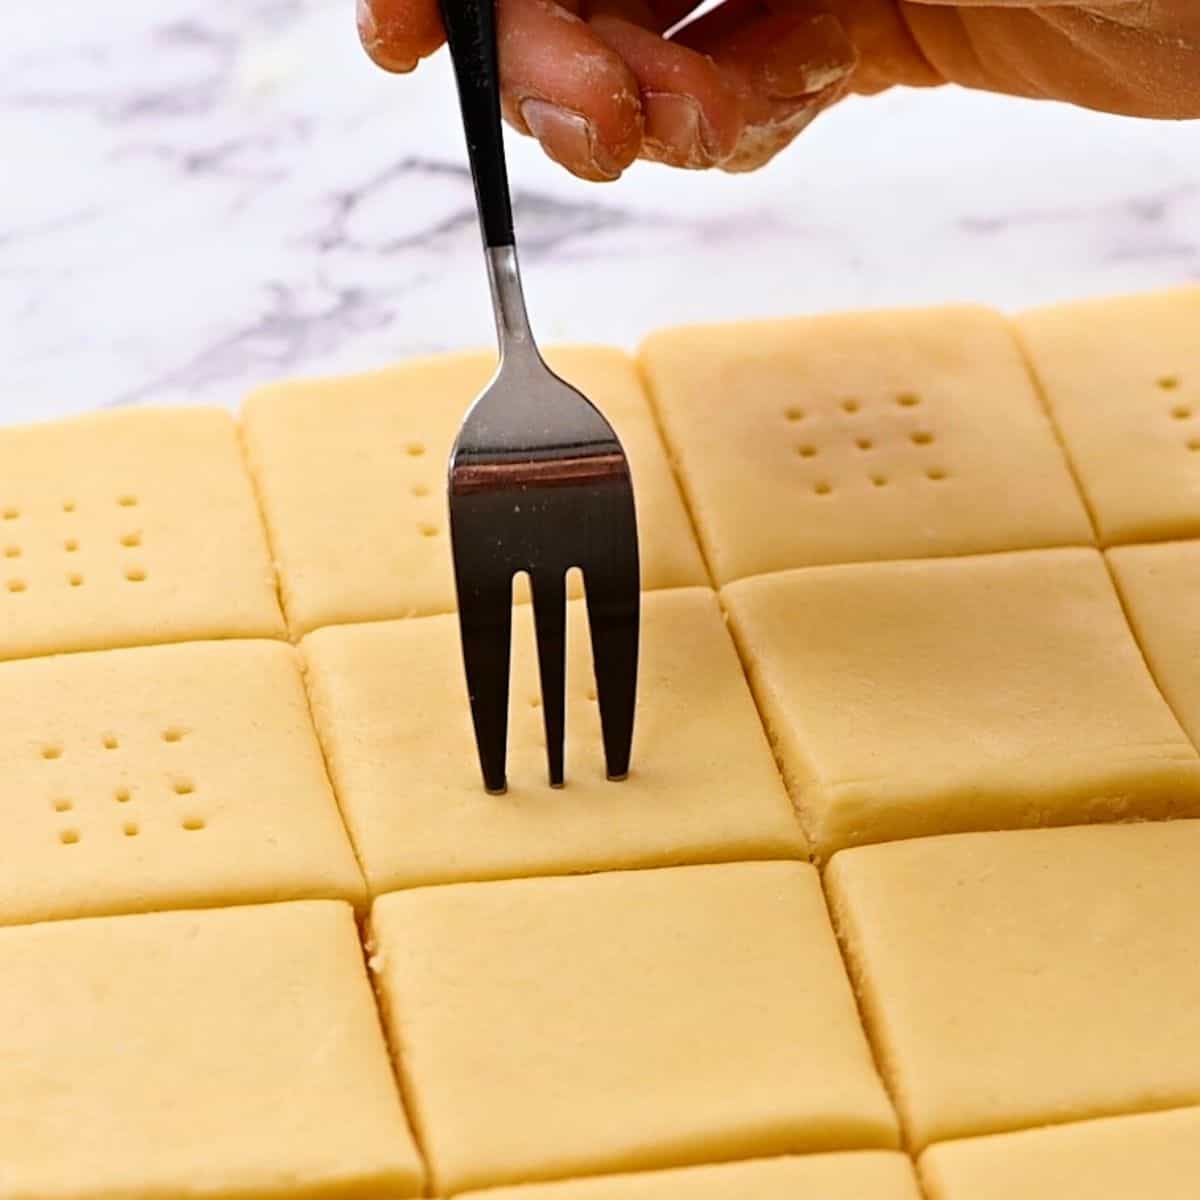 Using a fork to put pricks into shortbread cookie dough.